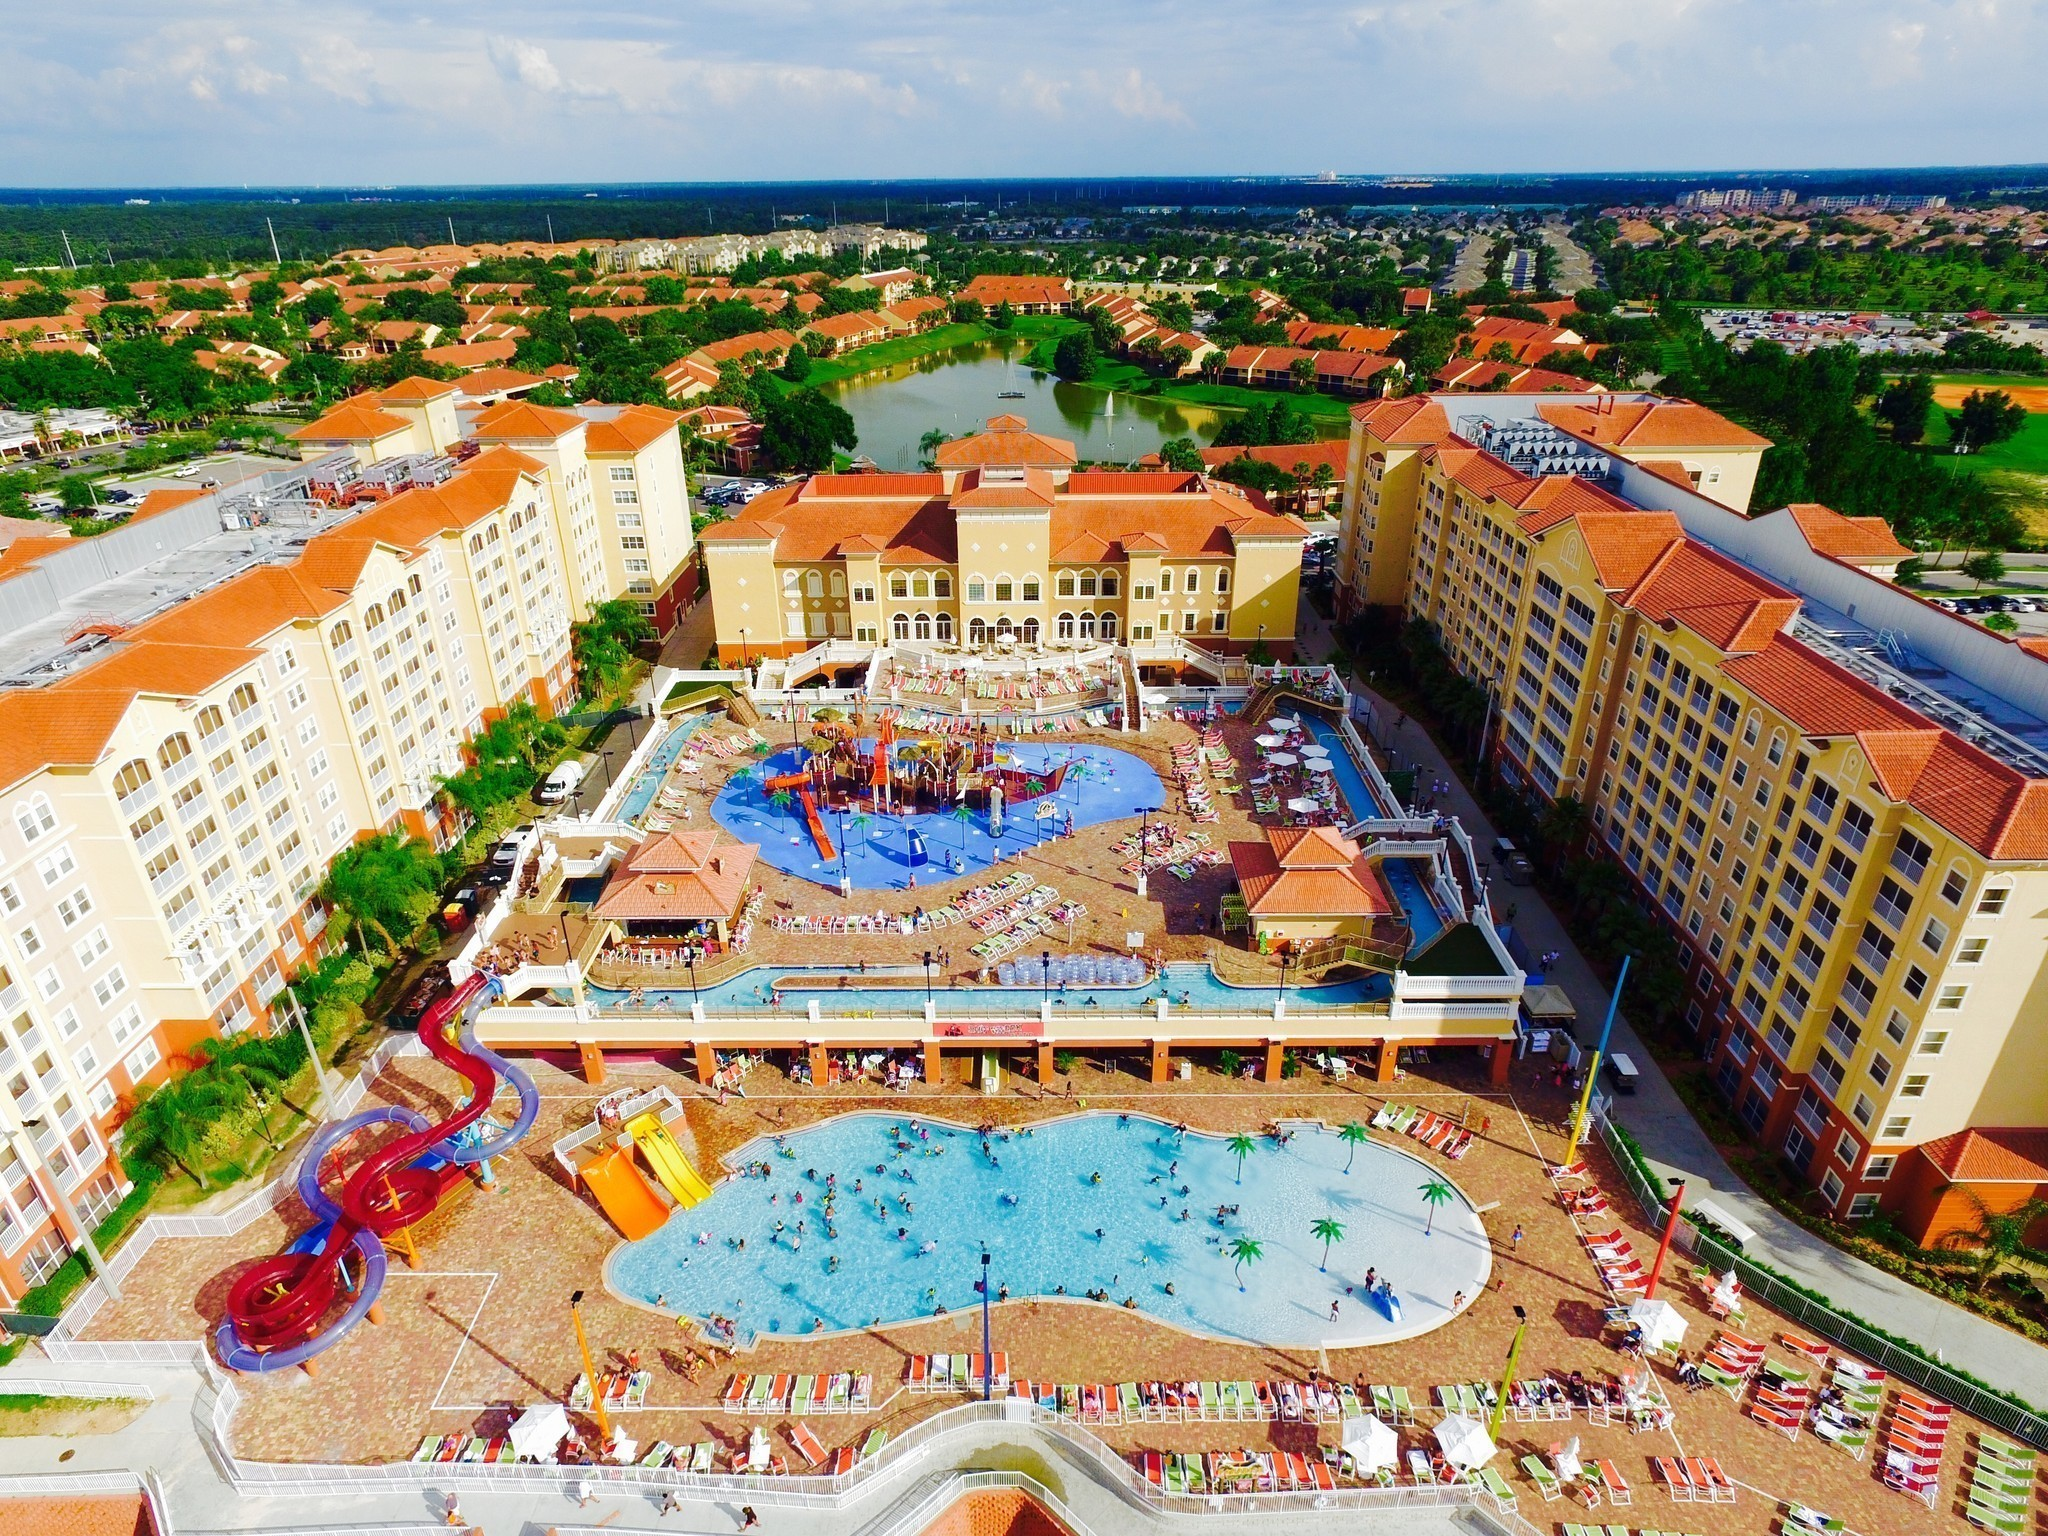 Westgate Resorts is an American timeshare resort company founded by David A. Siegel in The company first expanded from Central Florida to Miami and Daytona erlinelomanpu0mx.gq, [timeframe?] Westgate has 28 locations across the United States.